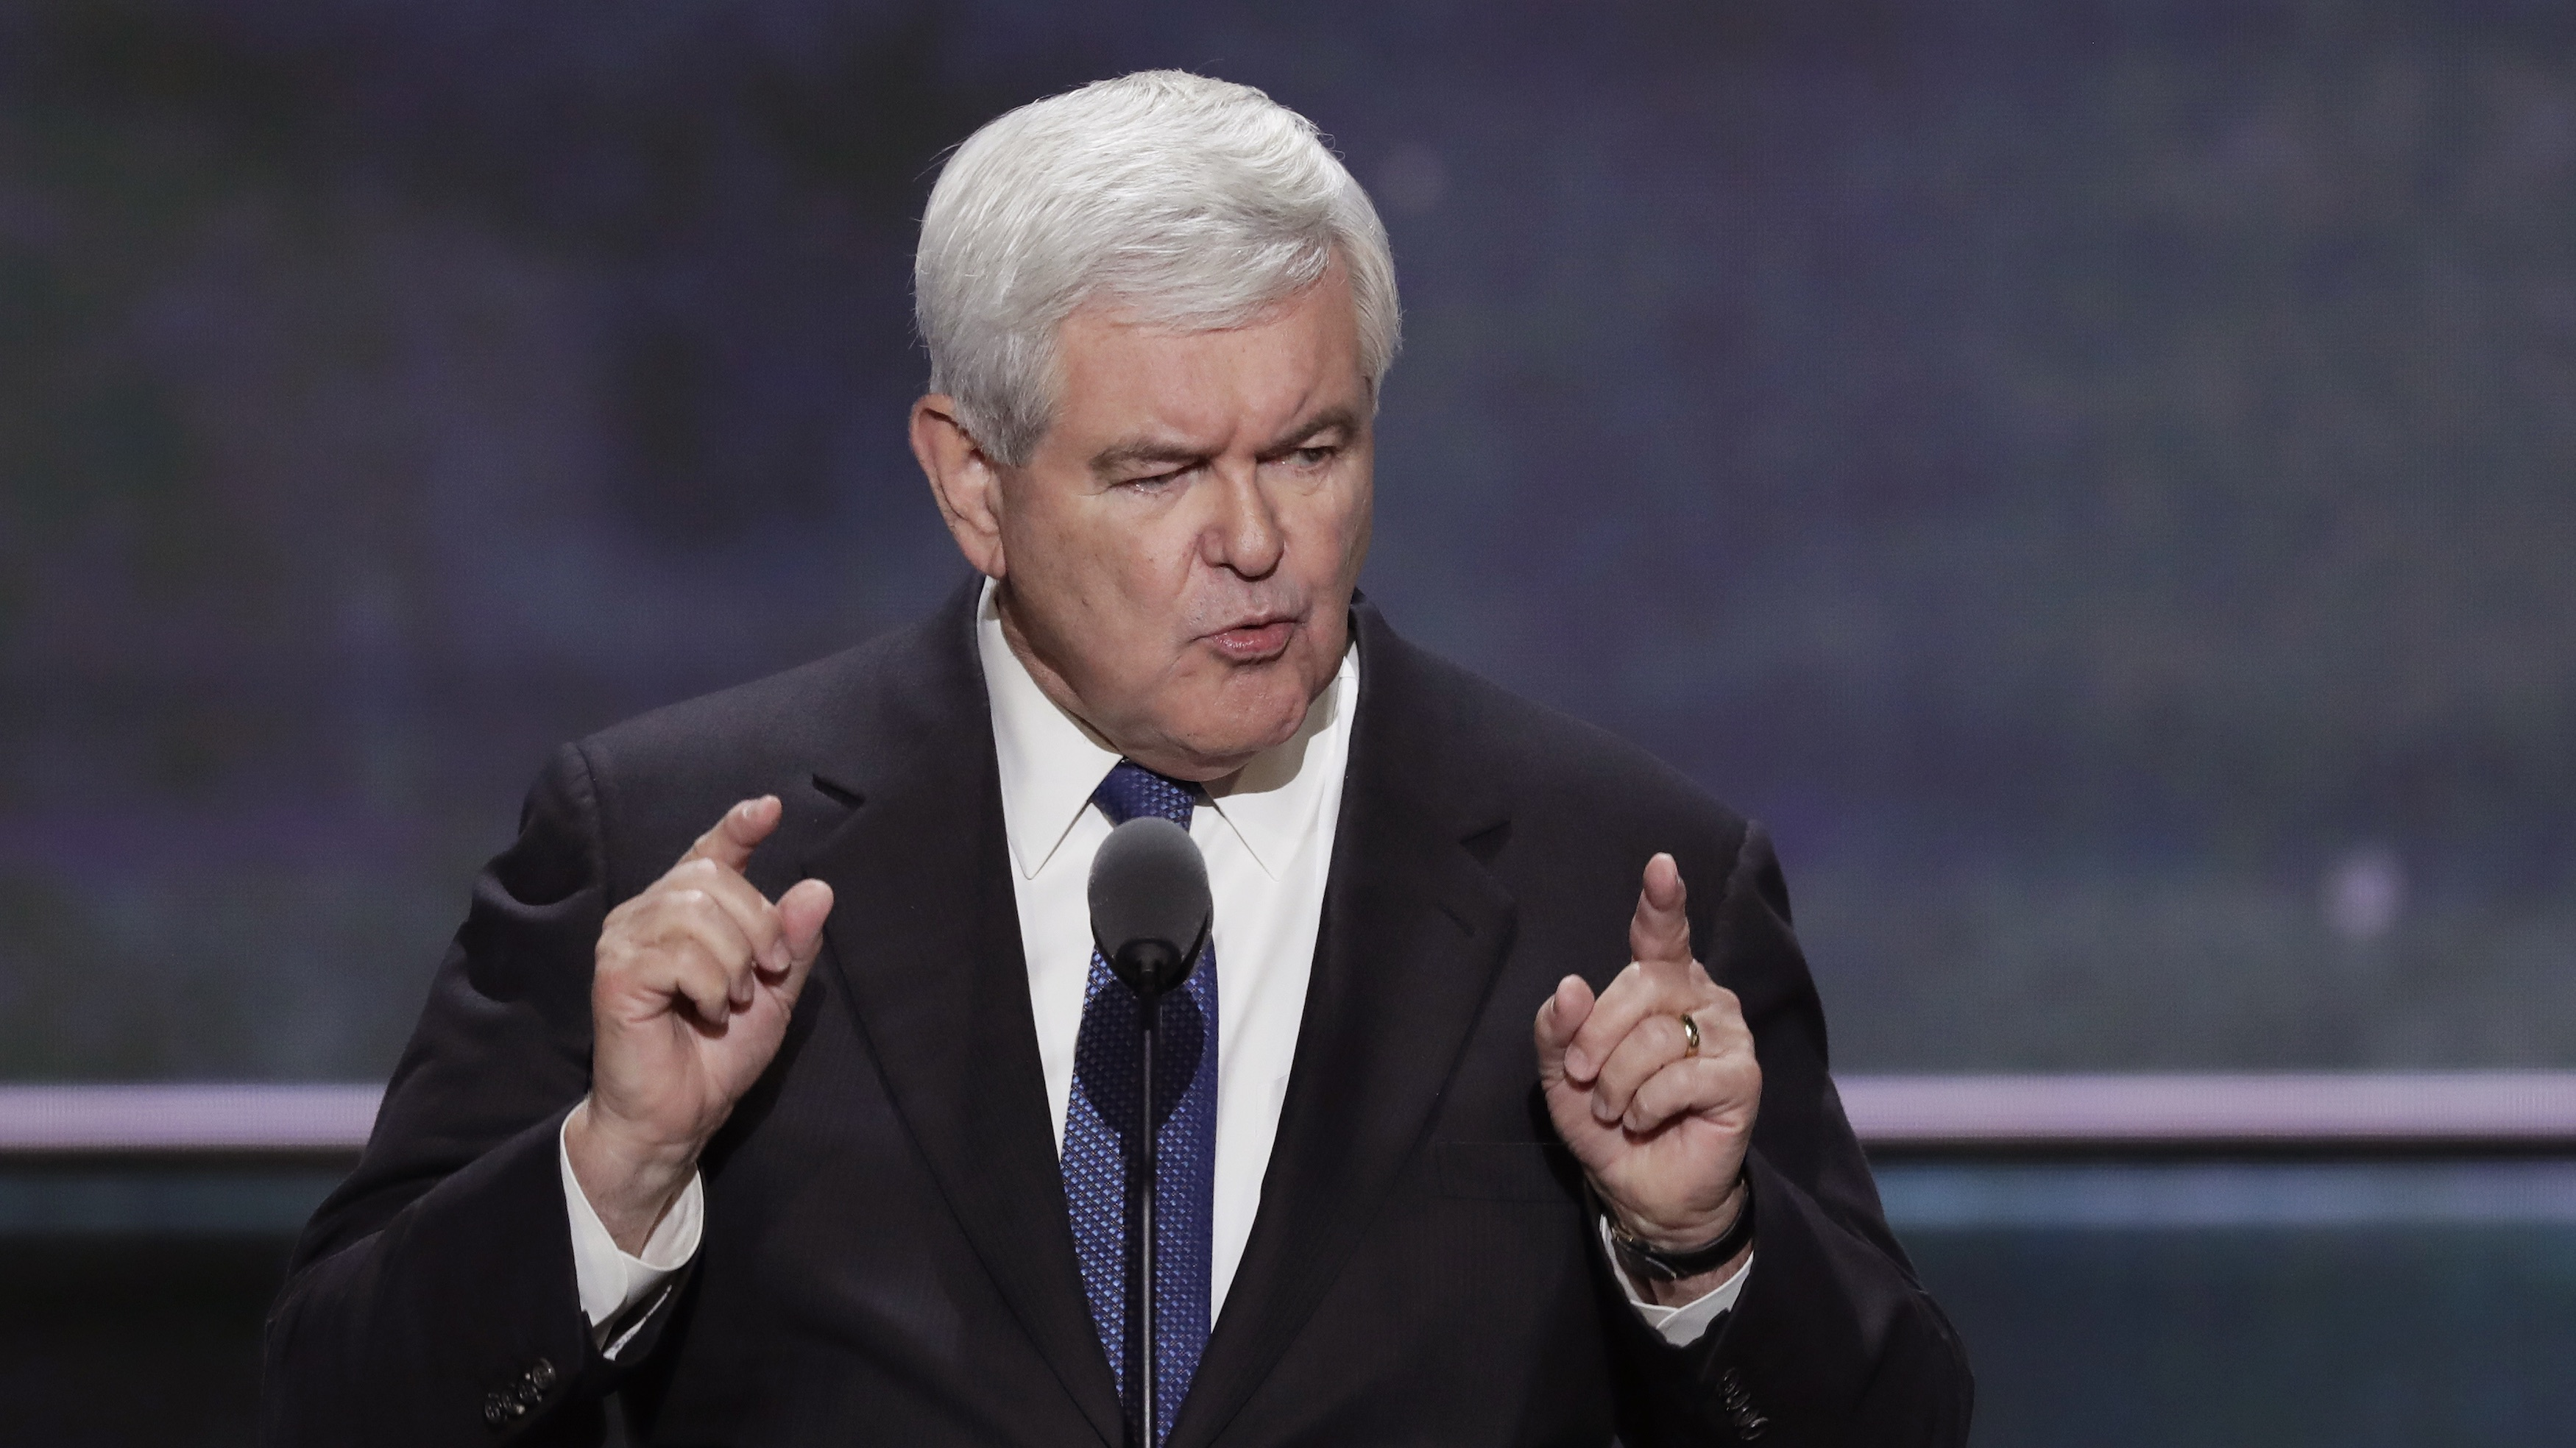 Newt Gingrich addresses the RNC in Cleveland.